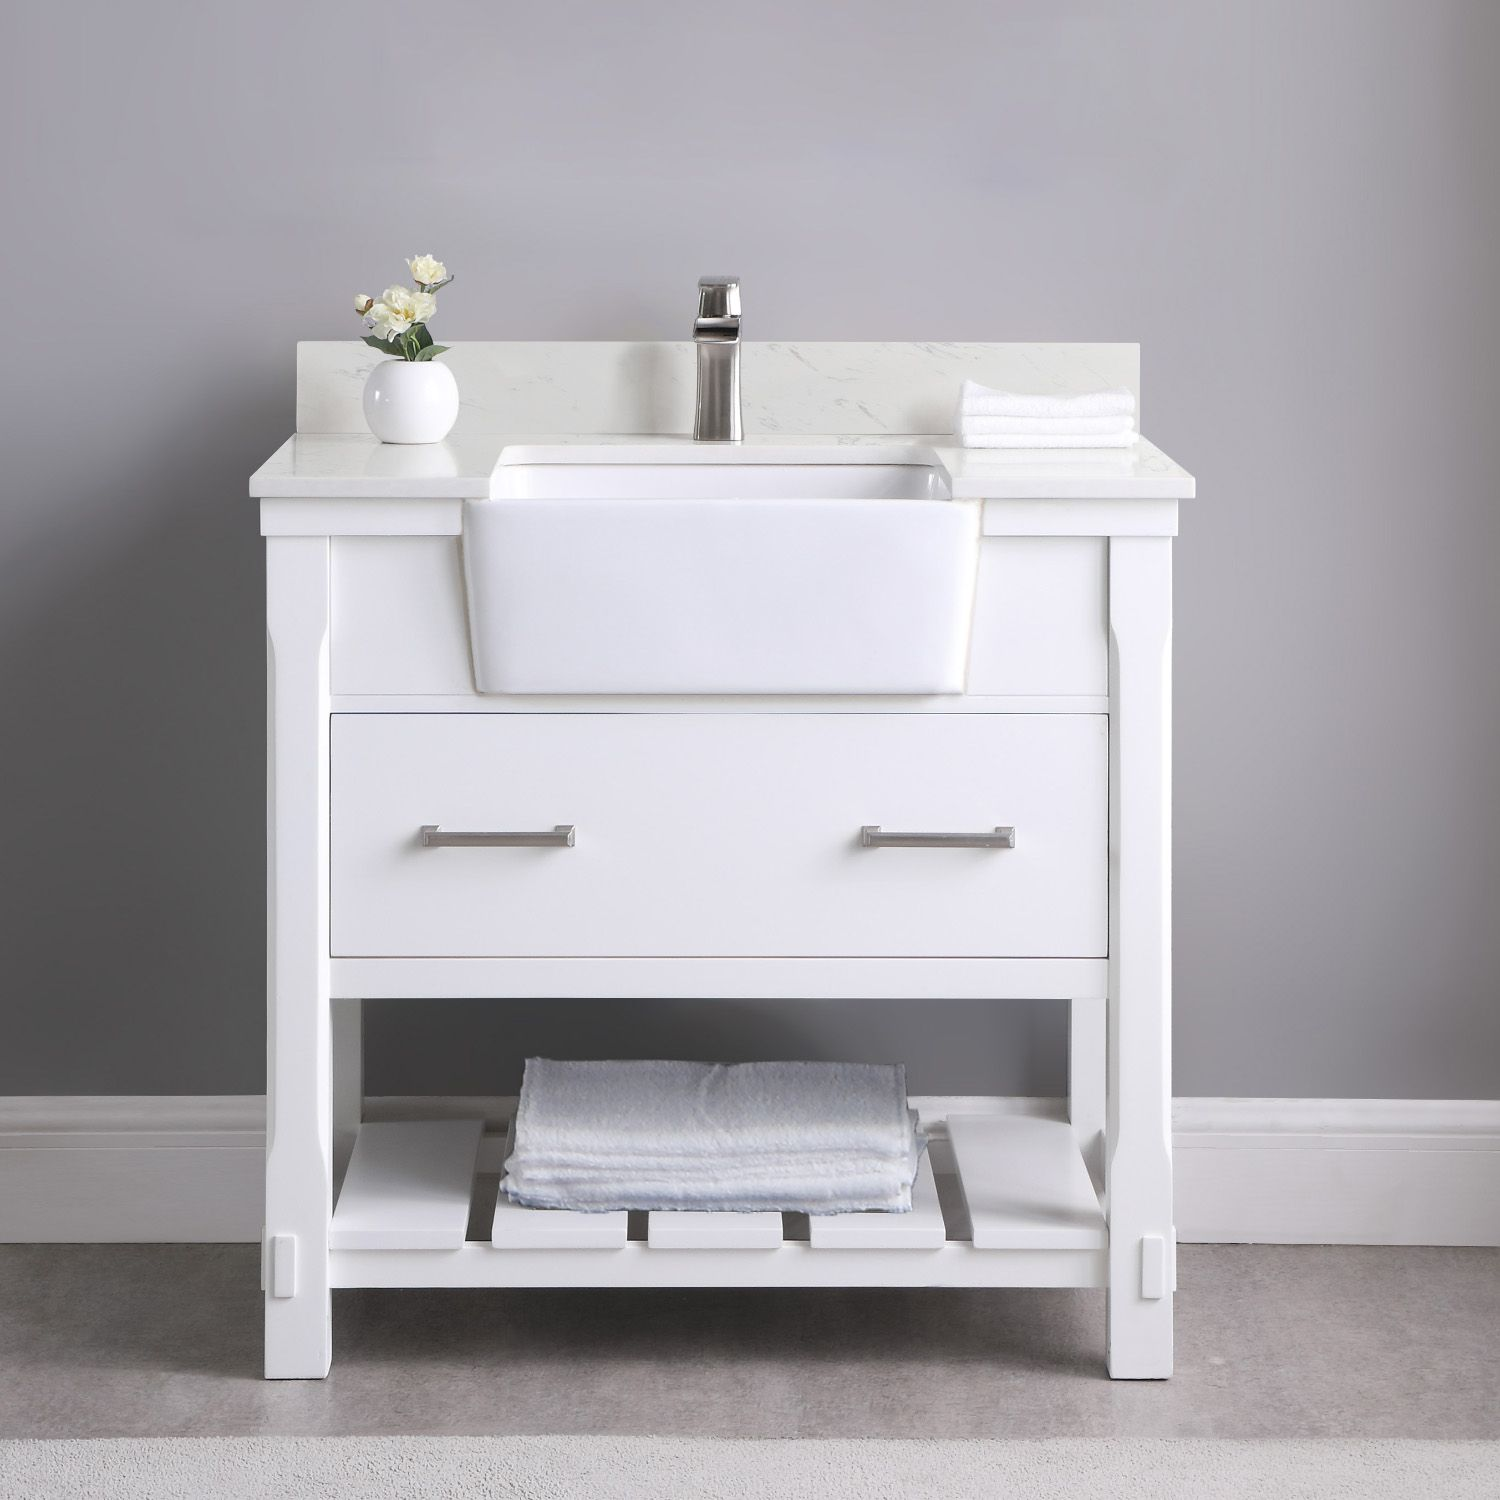 "Issac Edwards Collection 36"" Single Bathroom Vanity Set in White and Composite Carrara White Stone Top with White Farmhouse Basin without Mirror"